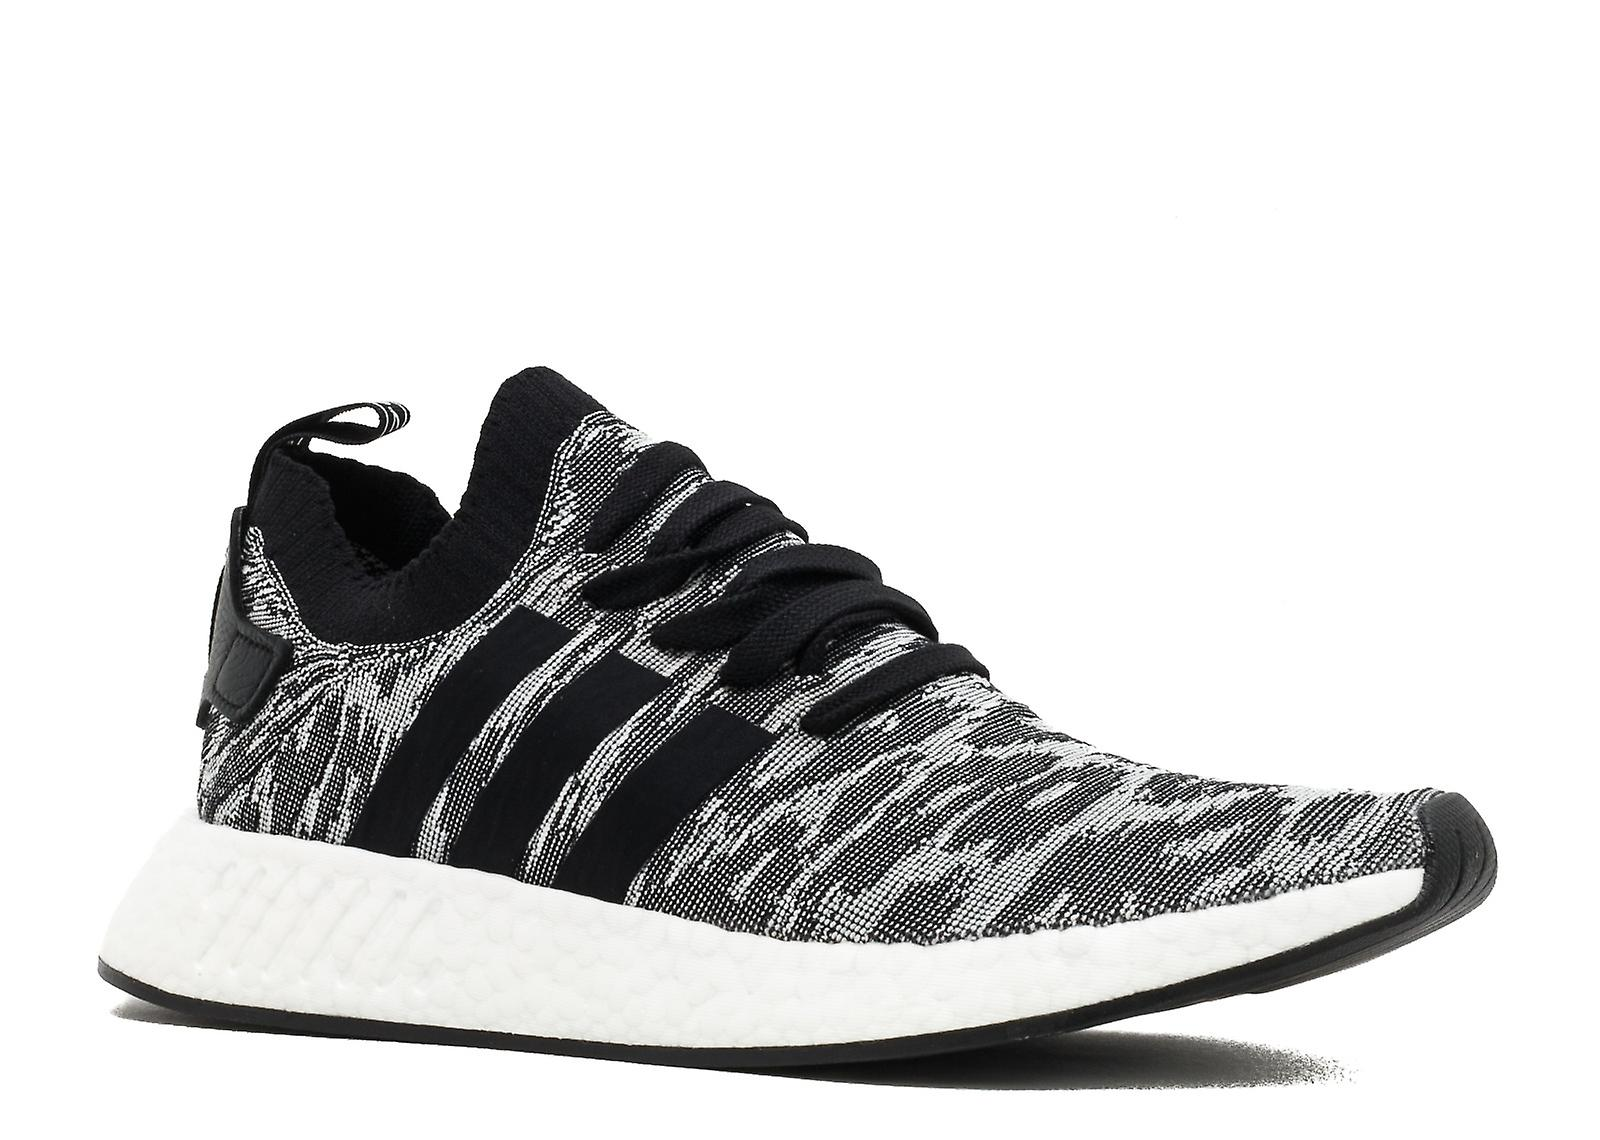 discount f530b cdfc2 Nmd R2 Pk - By9409 - Shoes